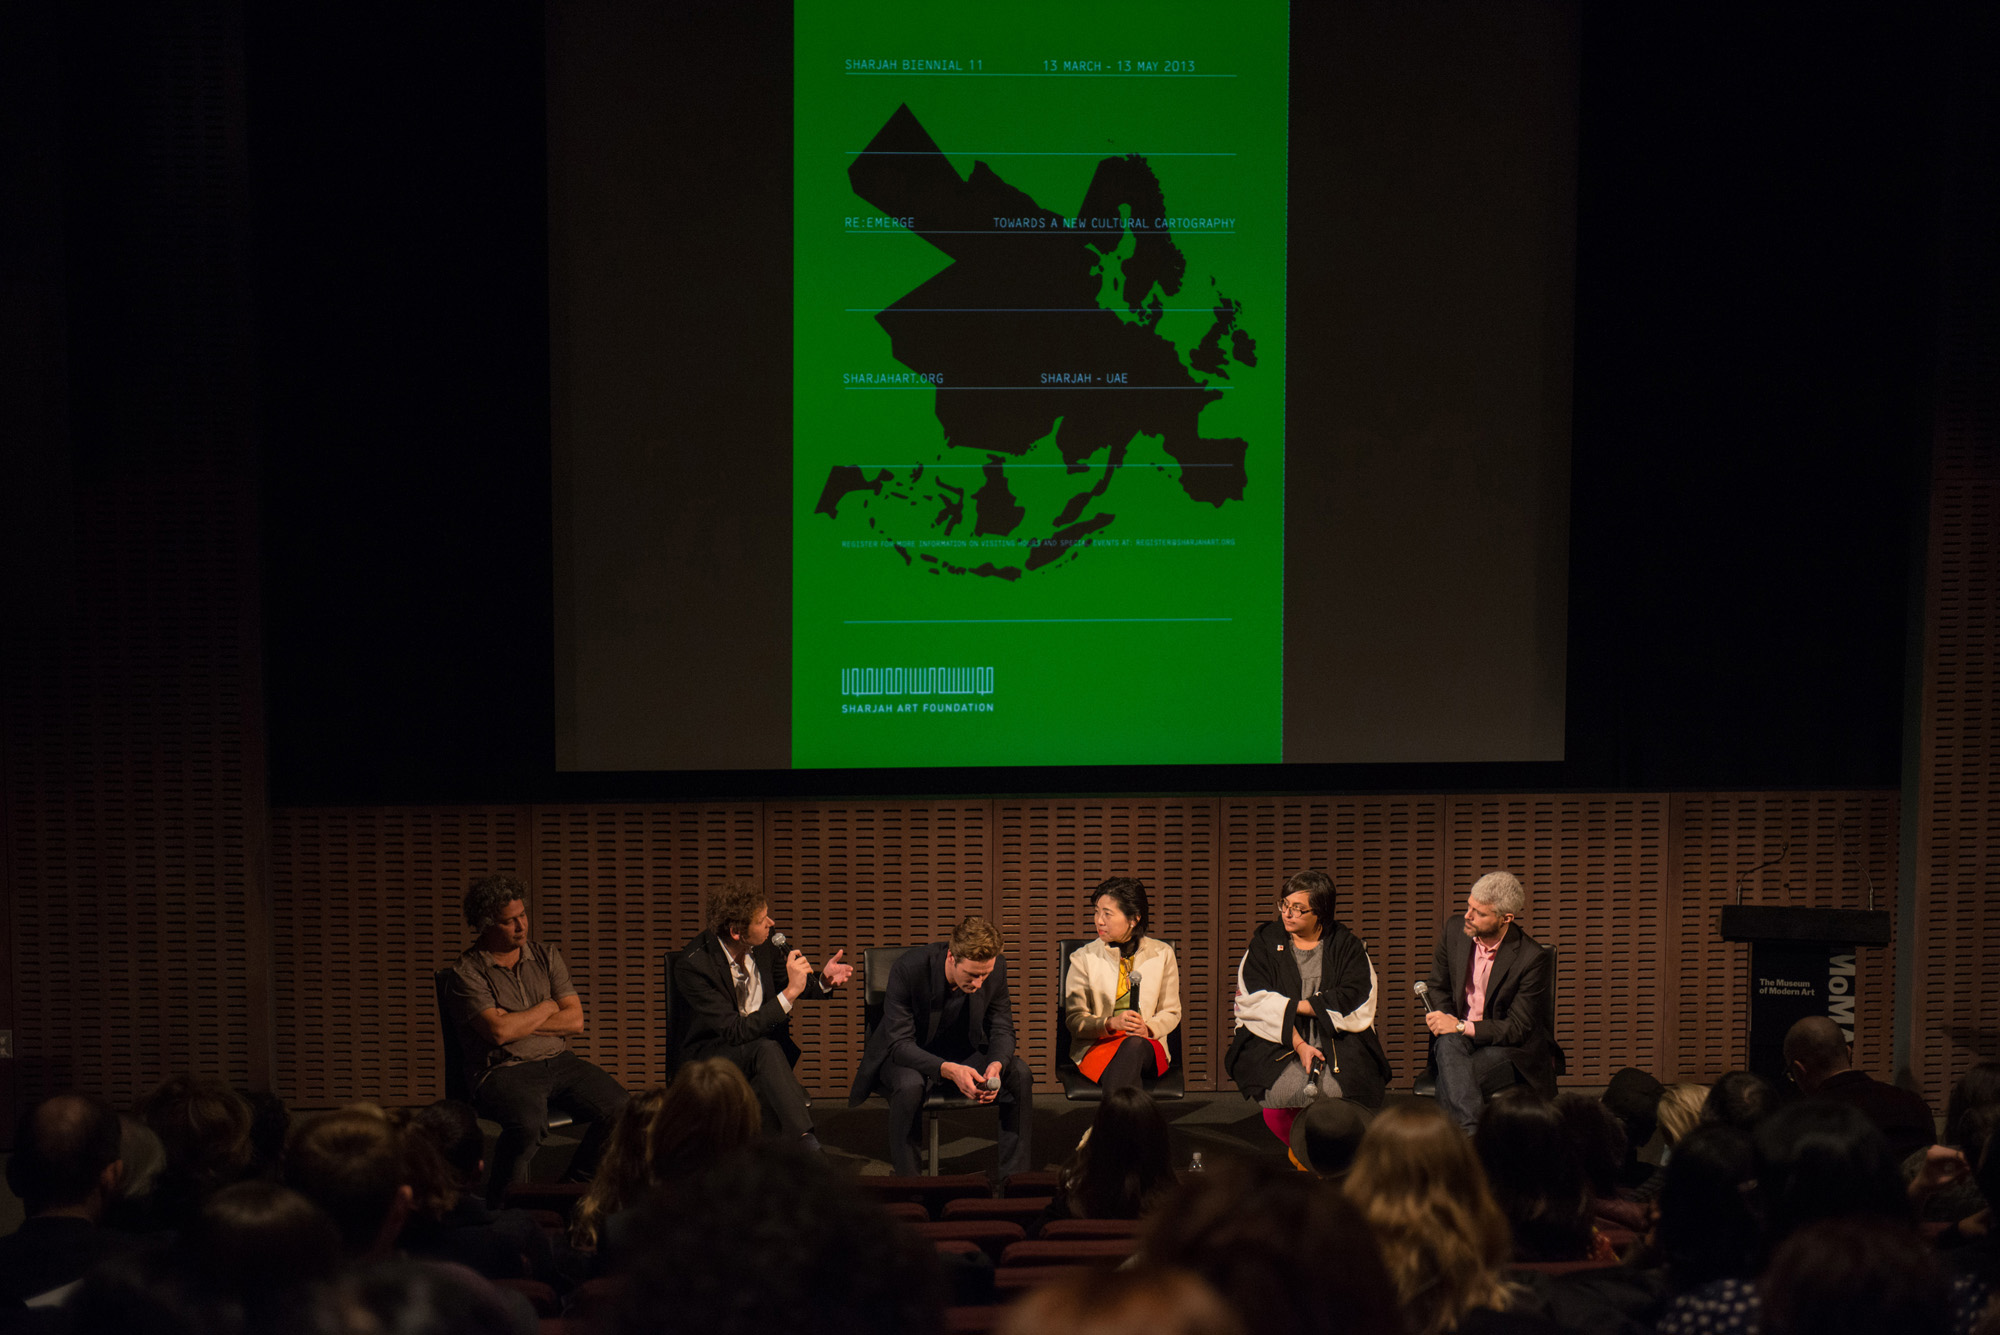 Sharjah Biennial 11 Panel Discussion at MoMA Image